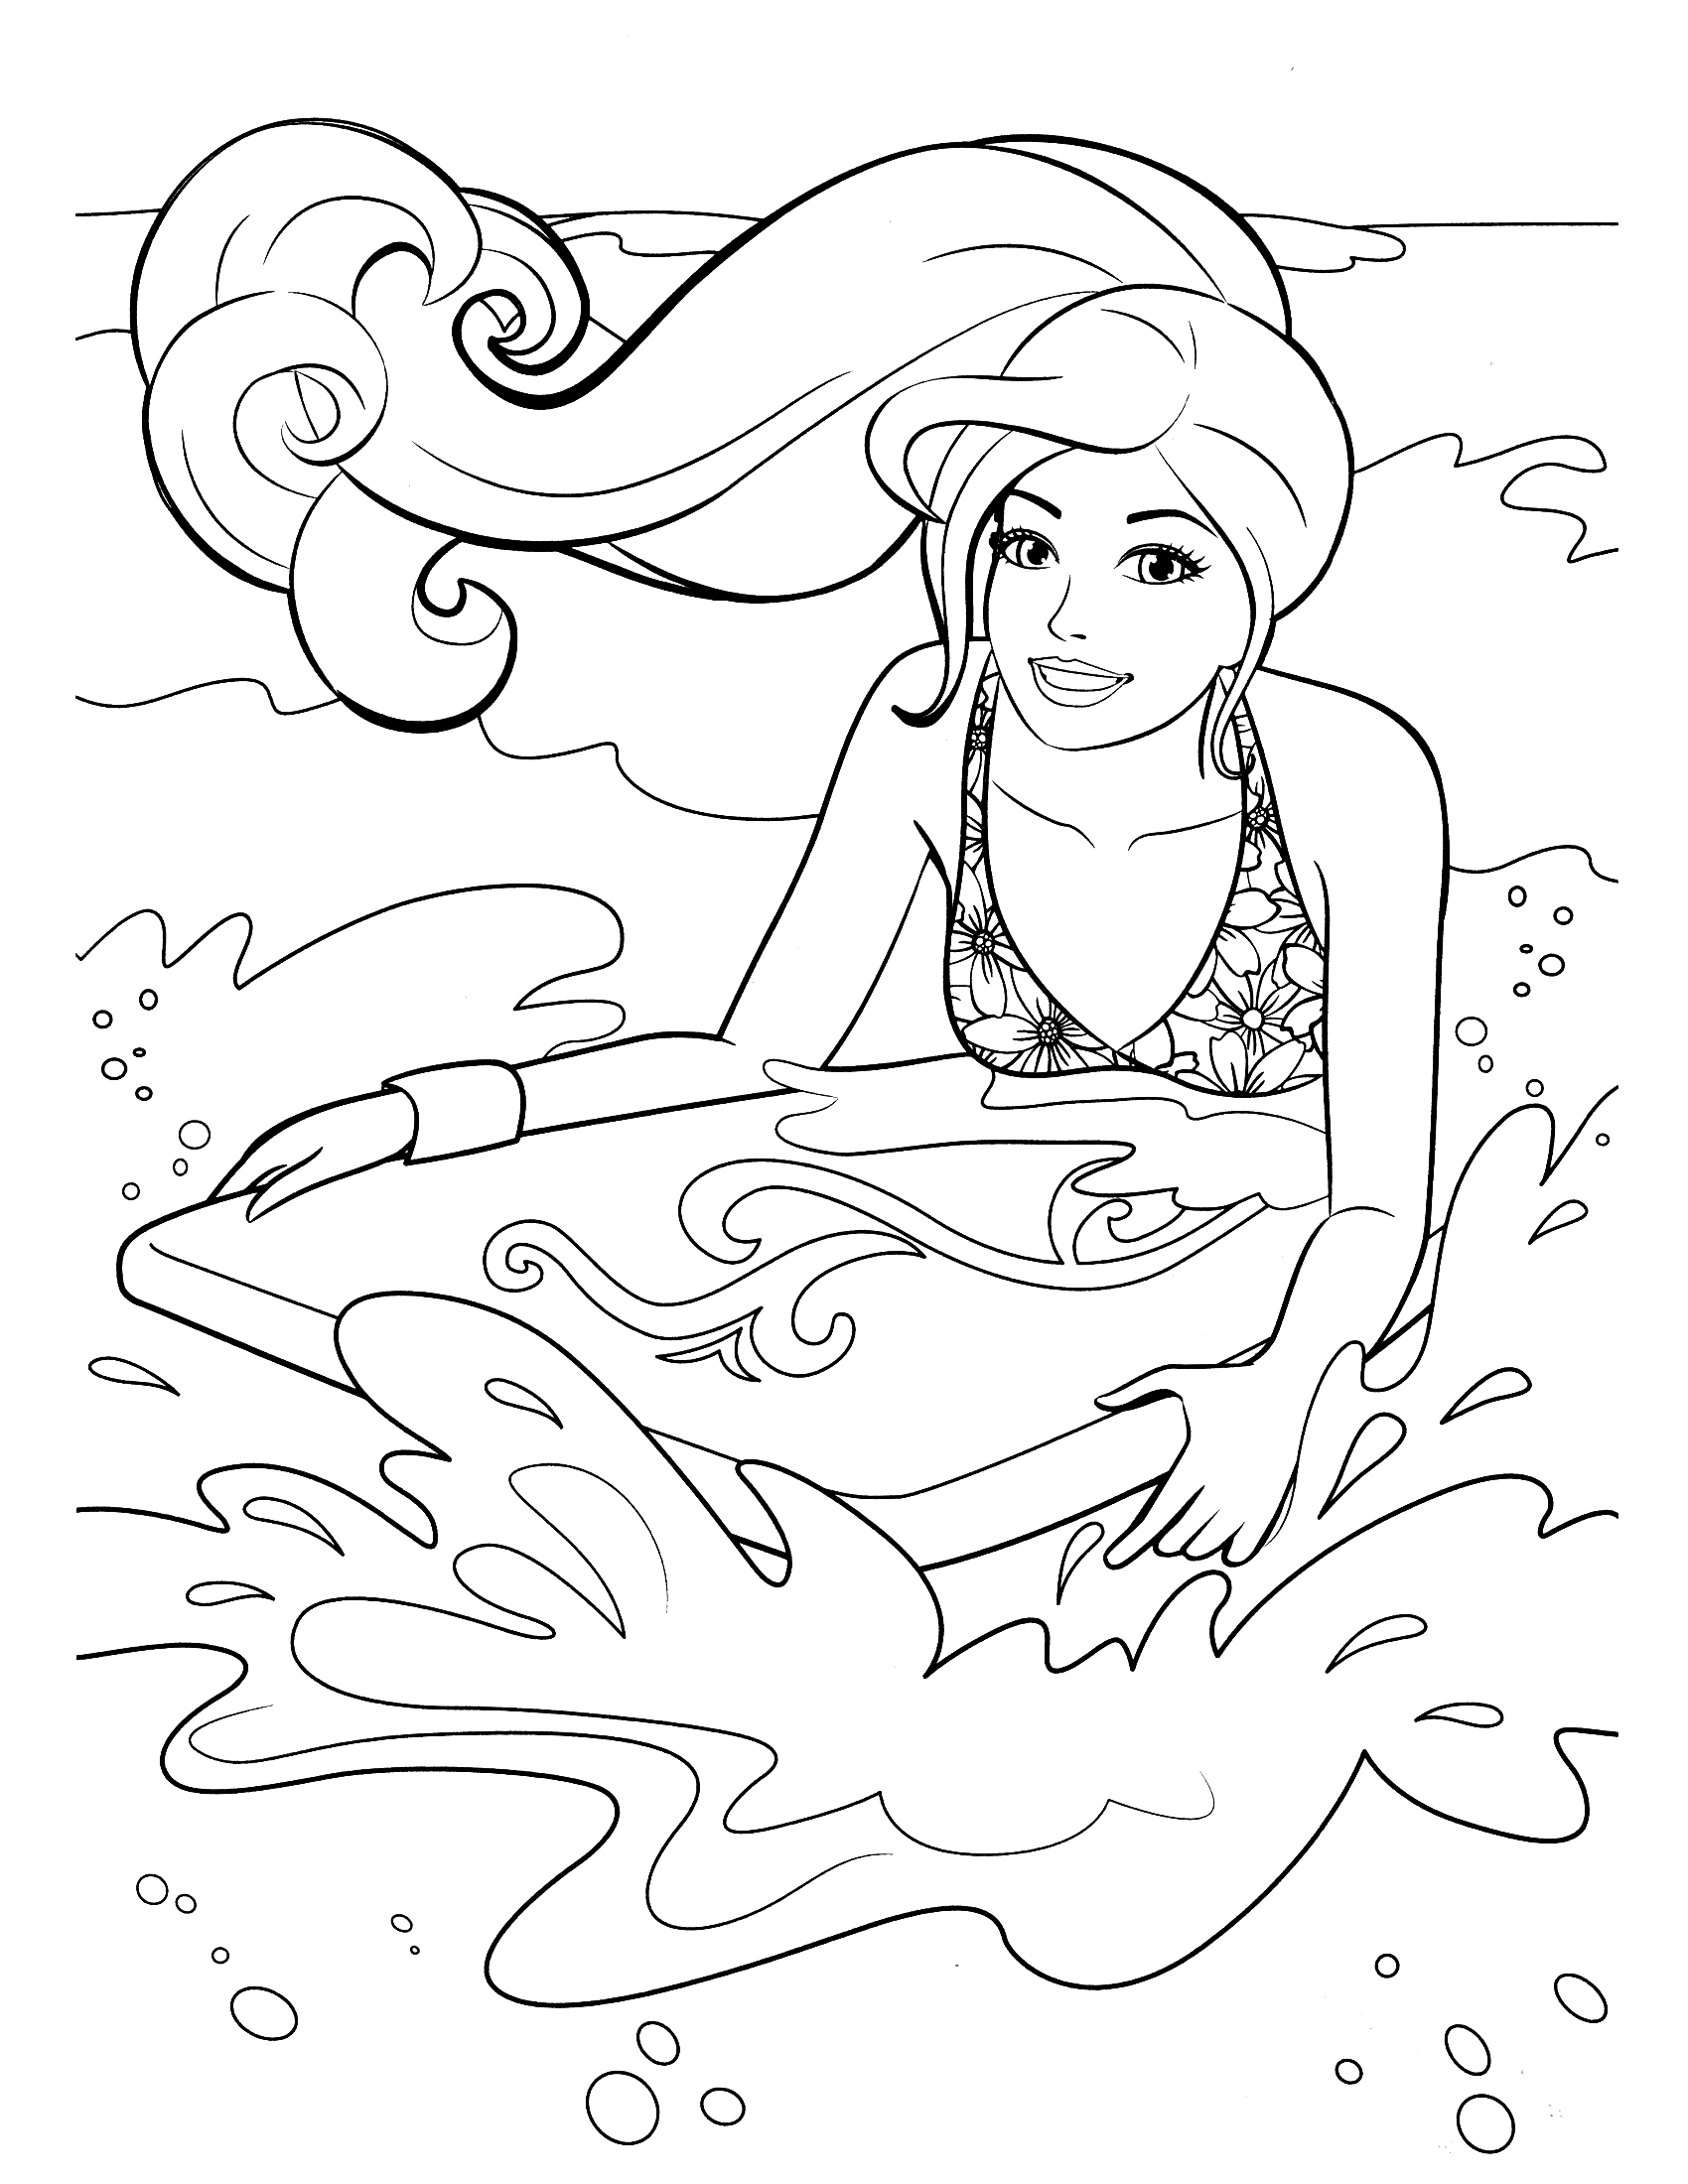 coloring pages of barbie 40 barbie coloring pages for kids of pages coloring barbie